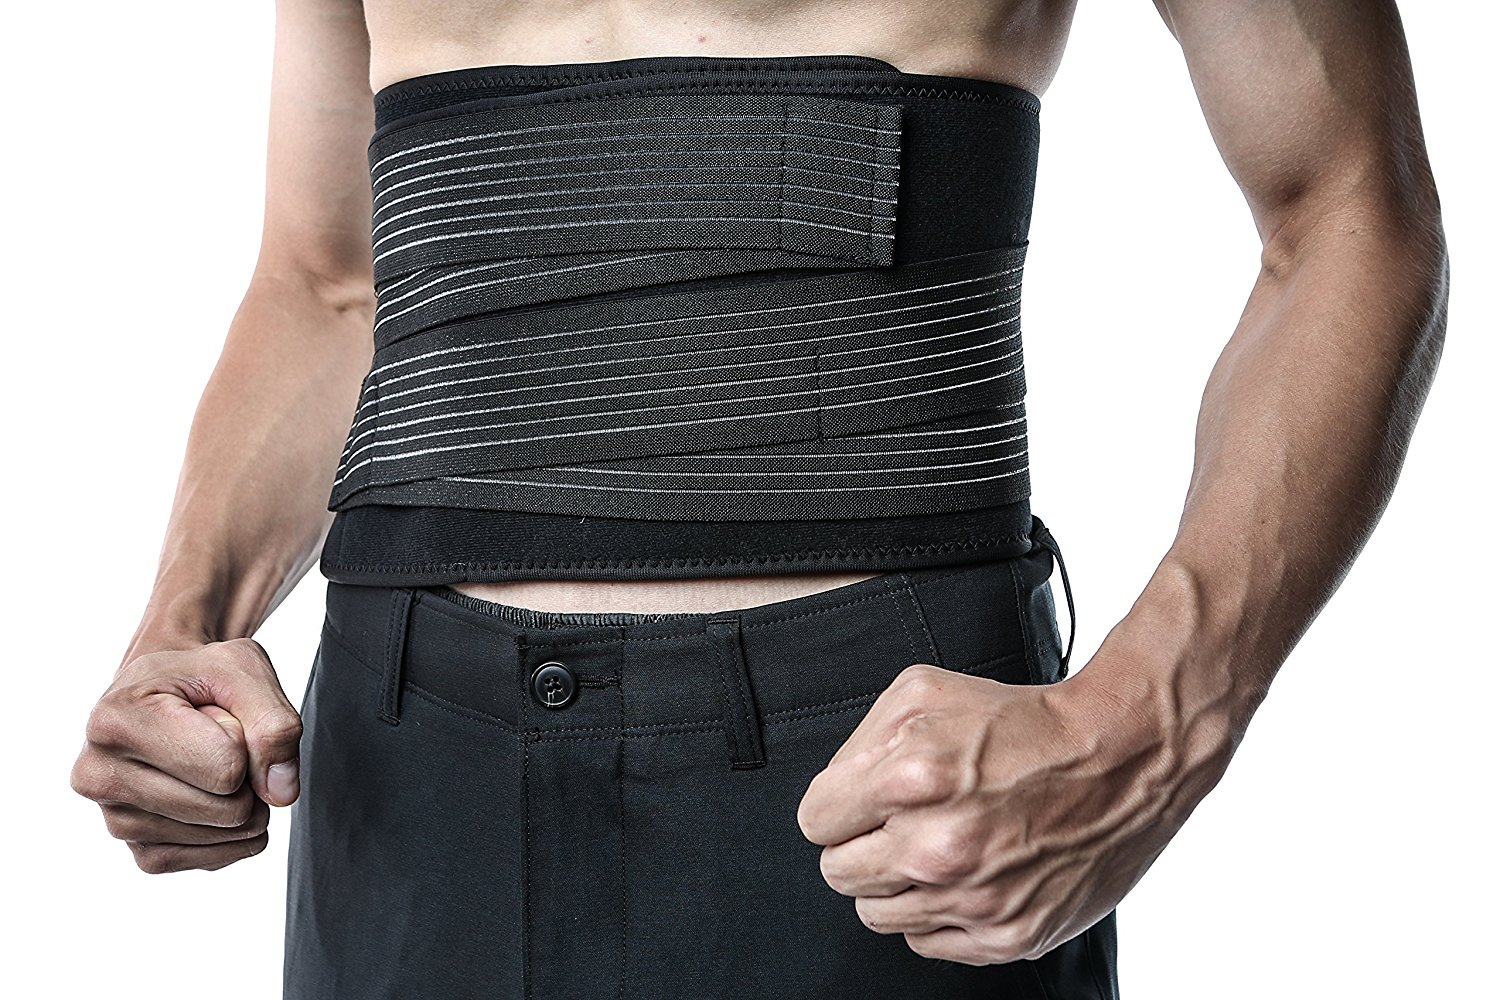 Think Ergo Neoprene Waist Trimmer Belt for Men and Women